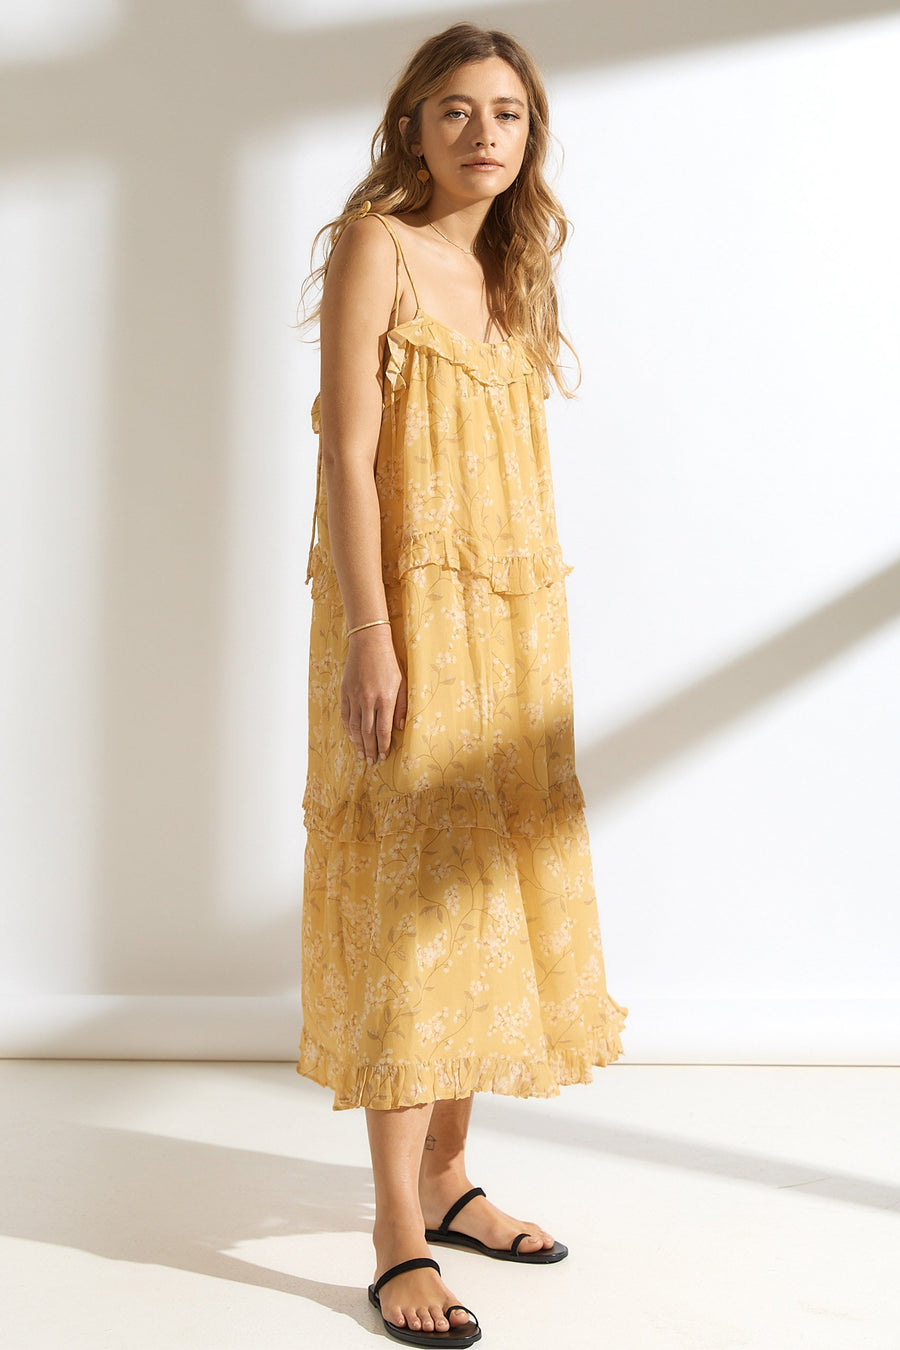 Saint Helena Teresa Summer Dress Lemon Blossom